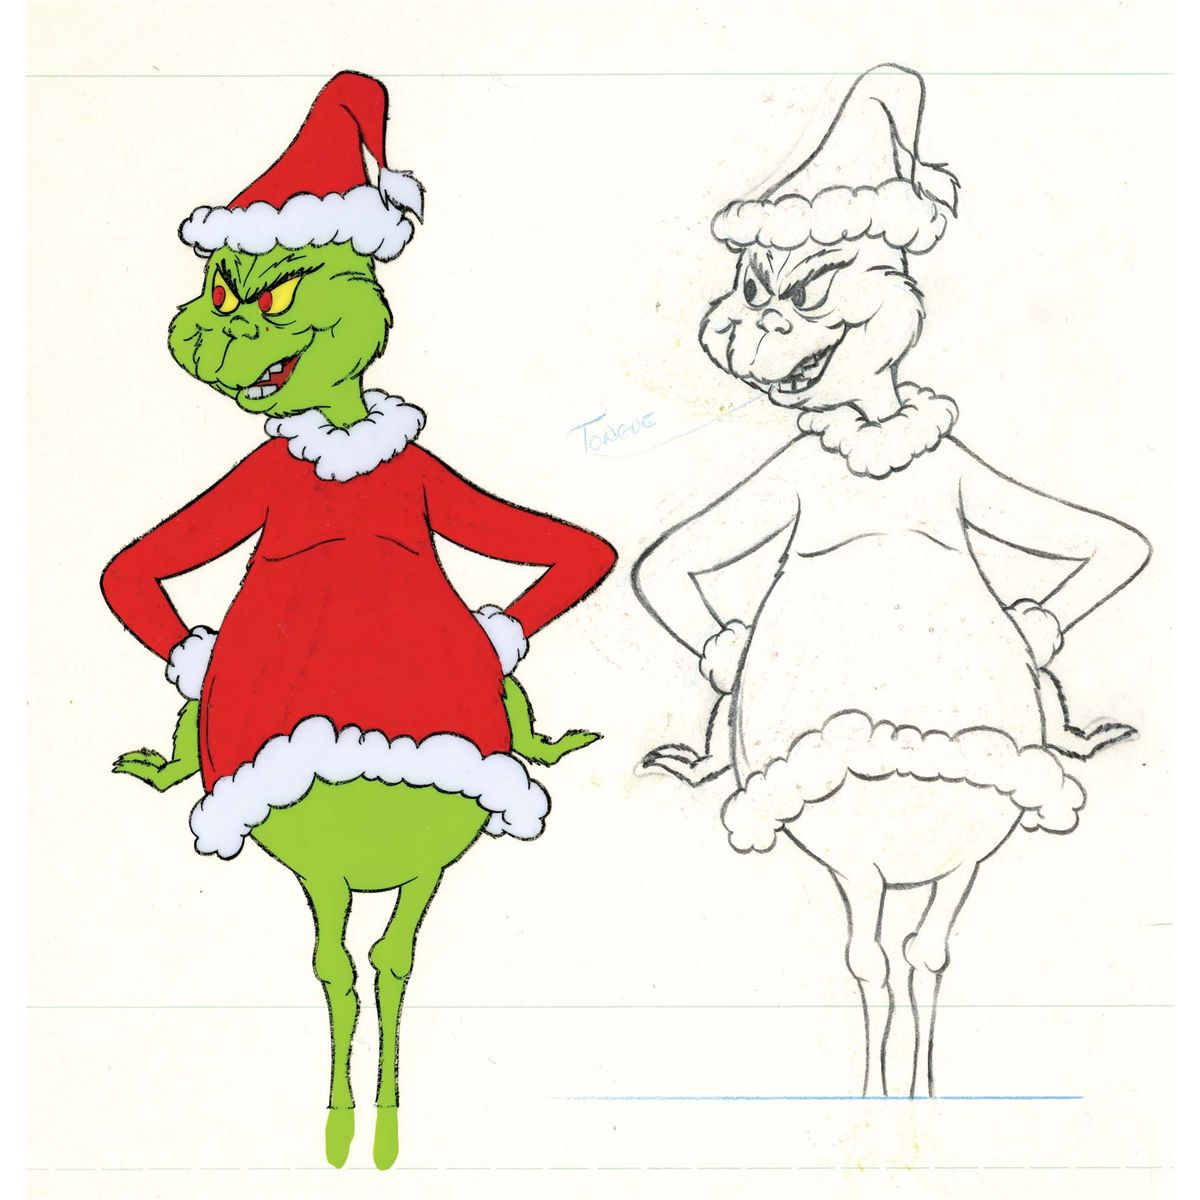 Original production cel and matching drawing from How the Grinch Stole Christmas